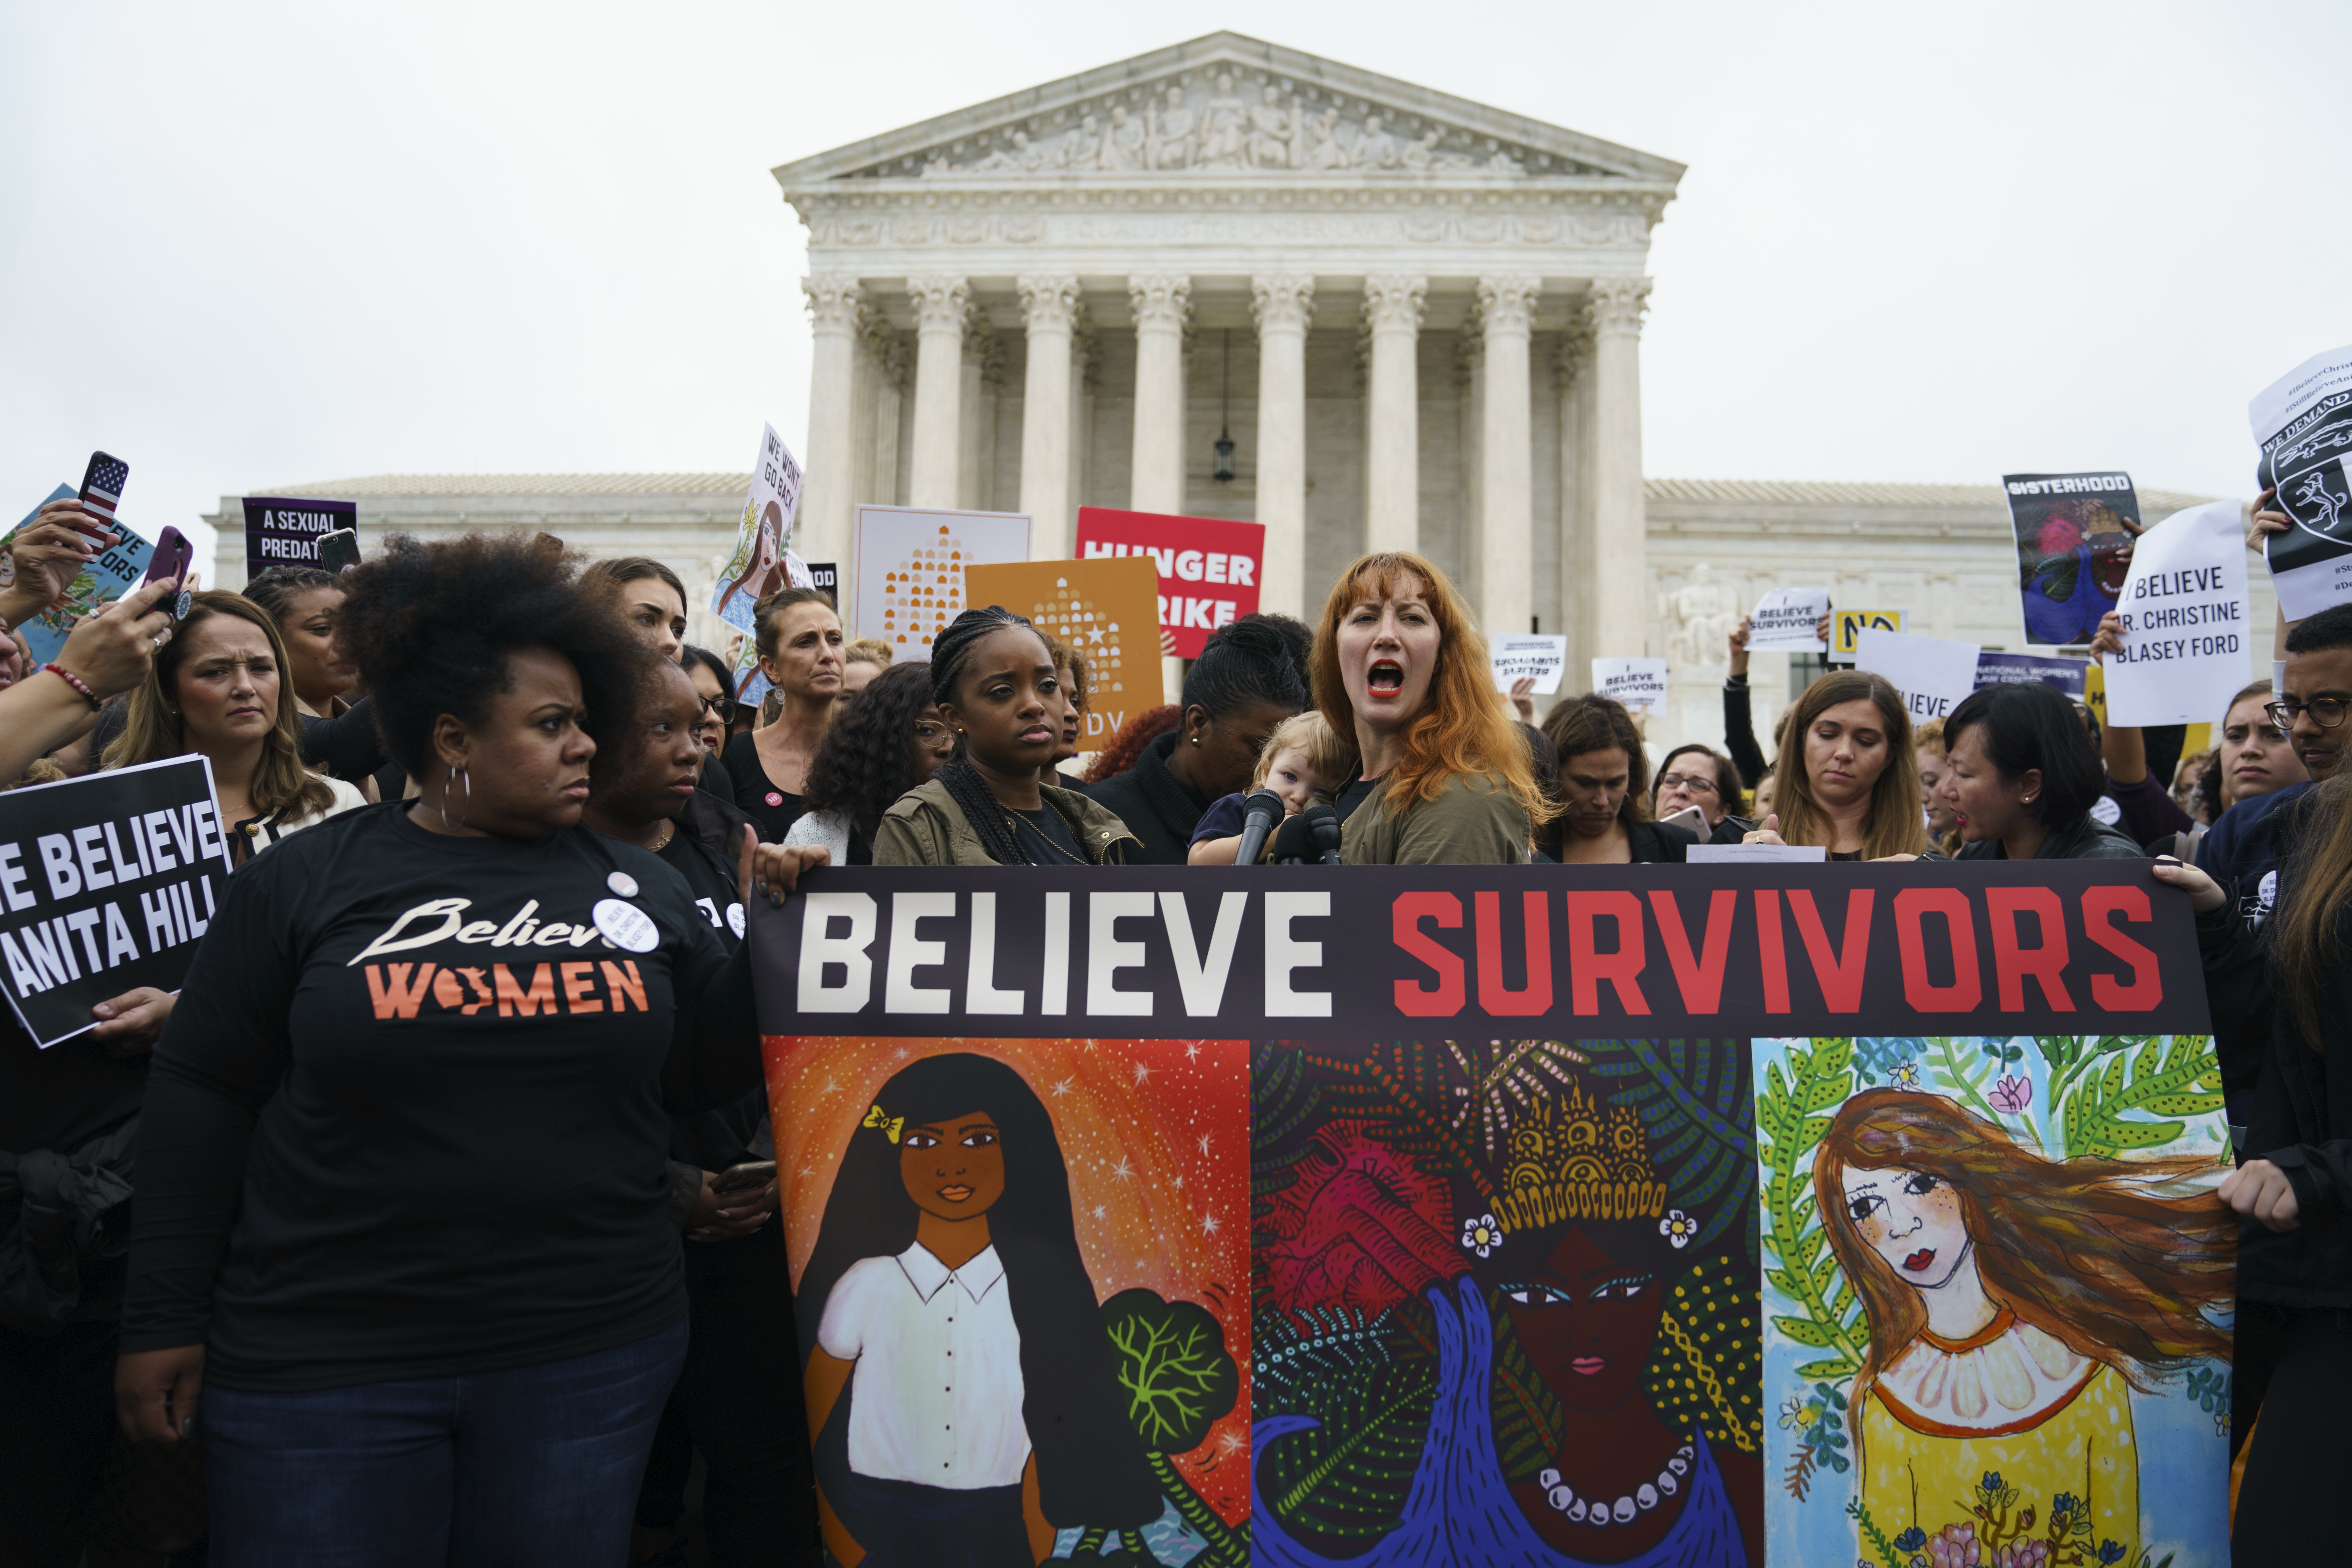 Photo: Believe Survivors SCOTUS Protest - AP Photo